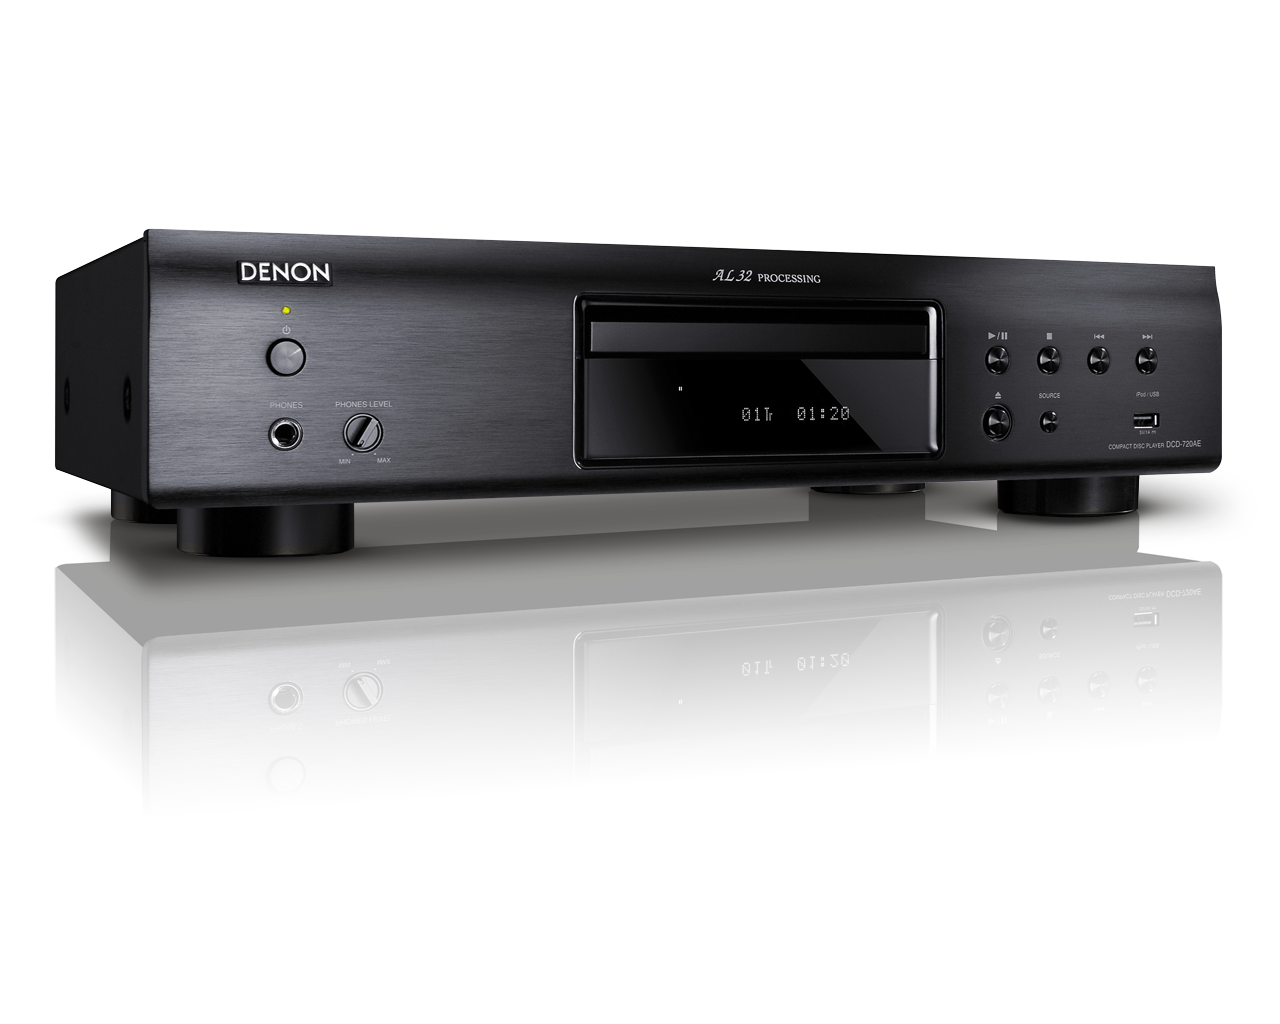 denon dcd 720ae schwarz cd player mit al32 processing und. Black Bedroom Furniture Sets. Home Design Ideas